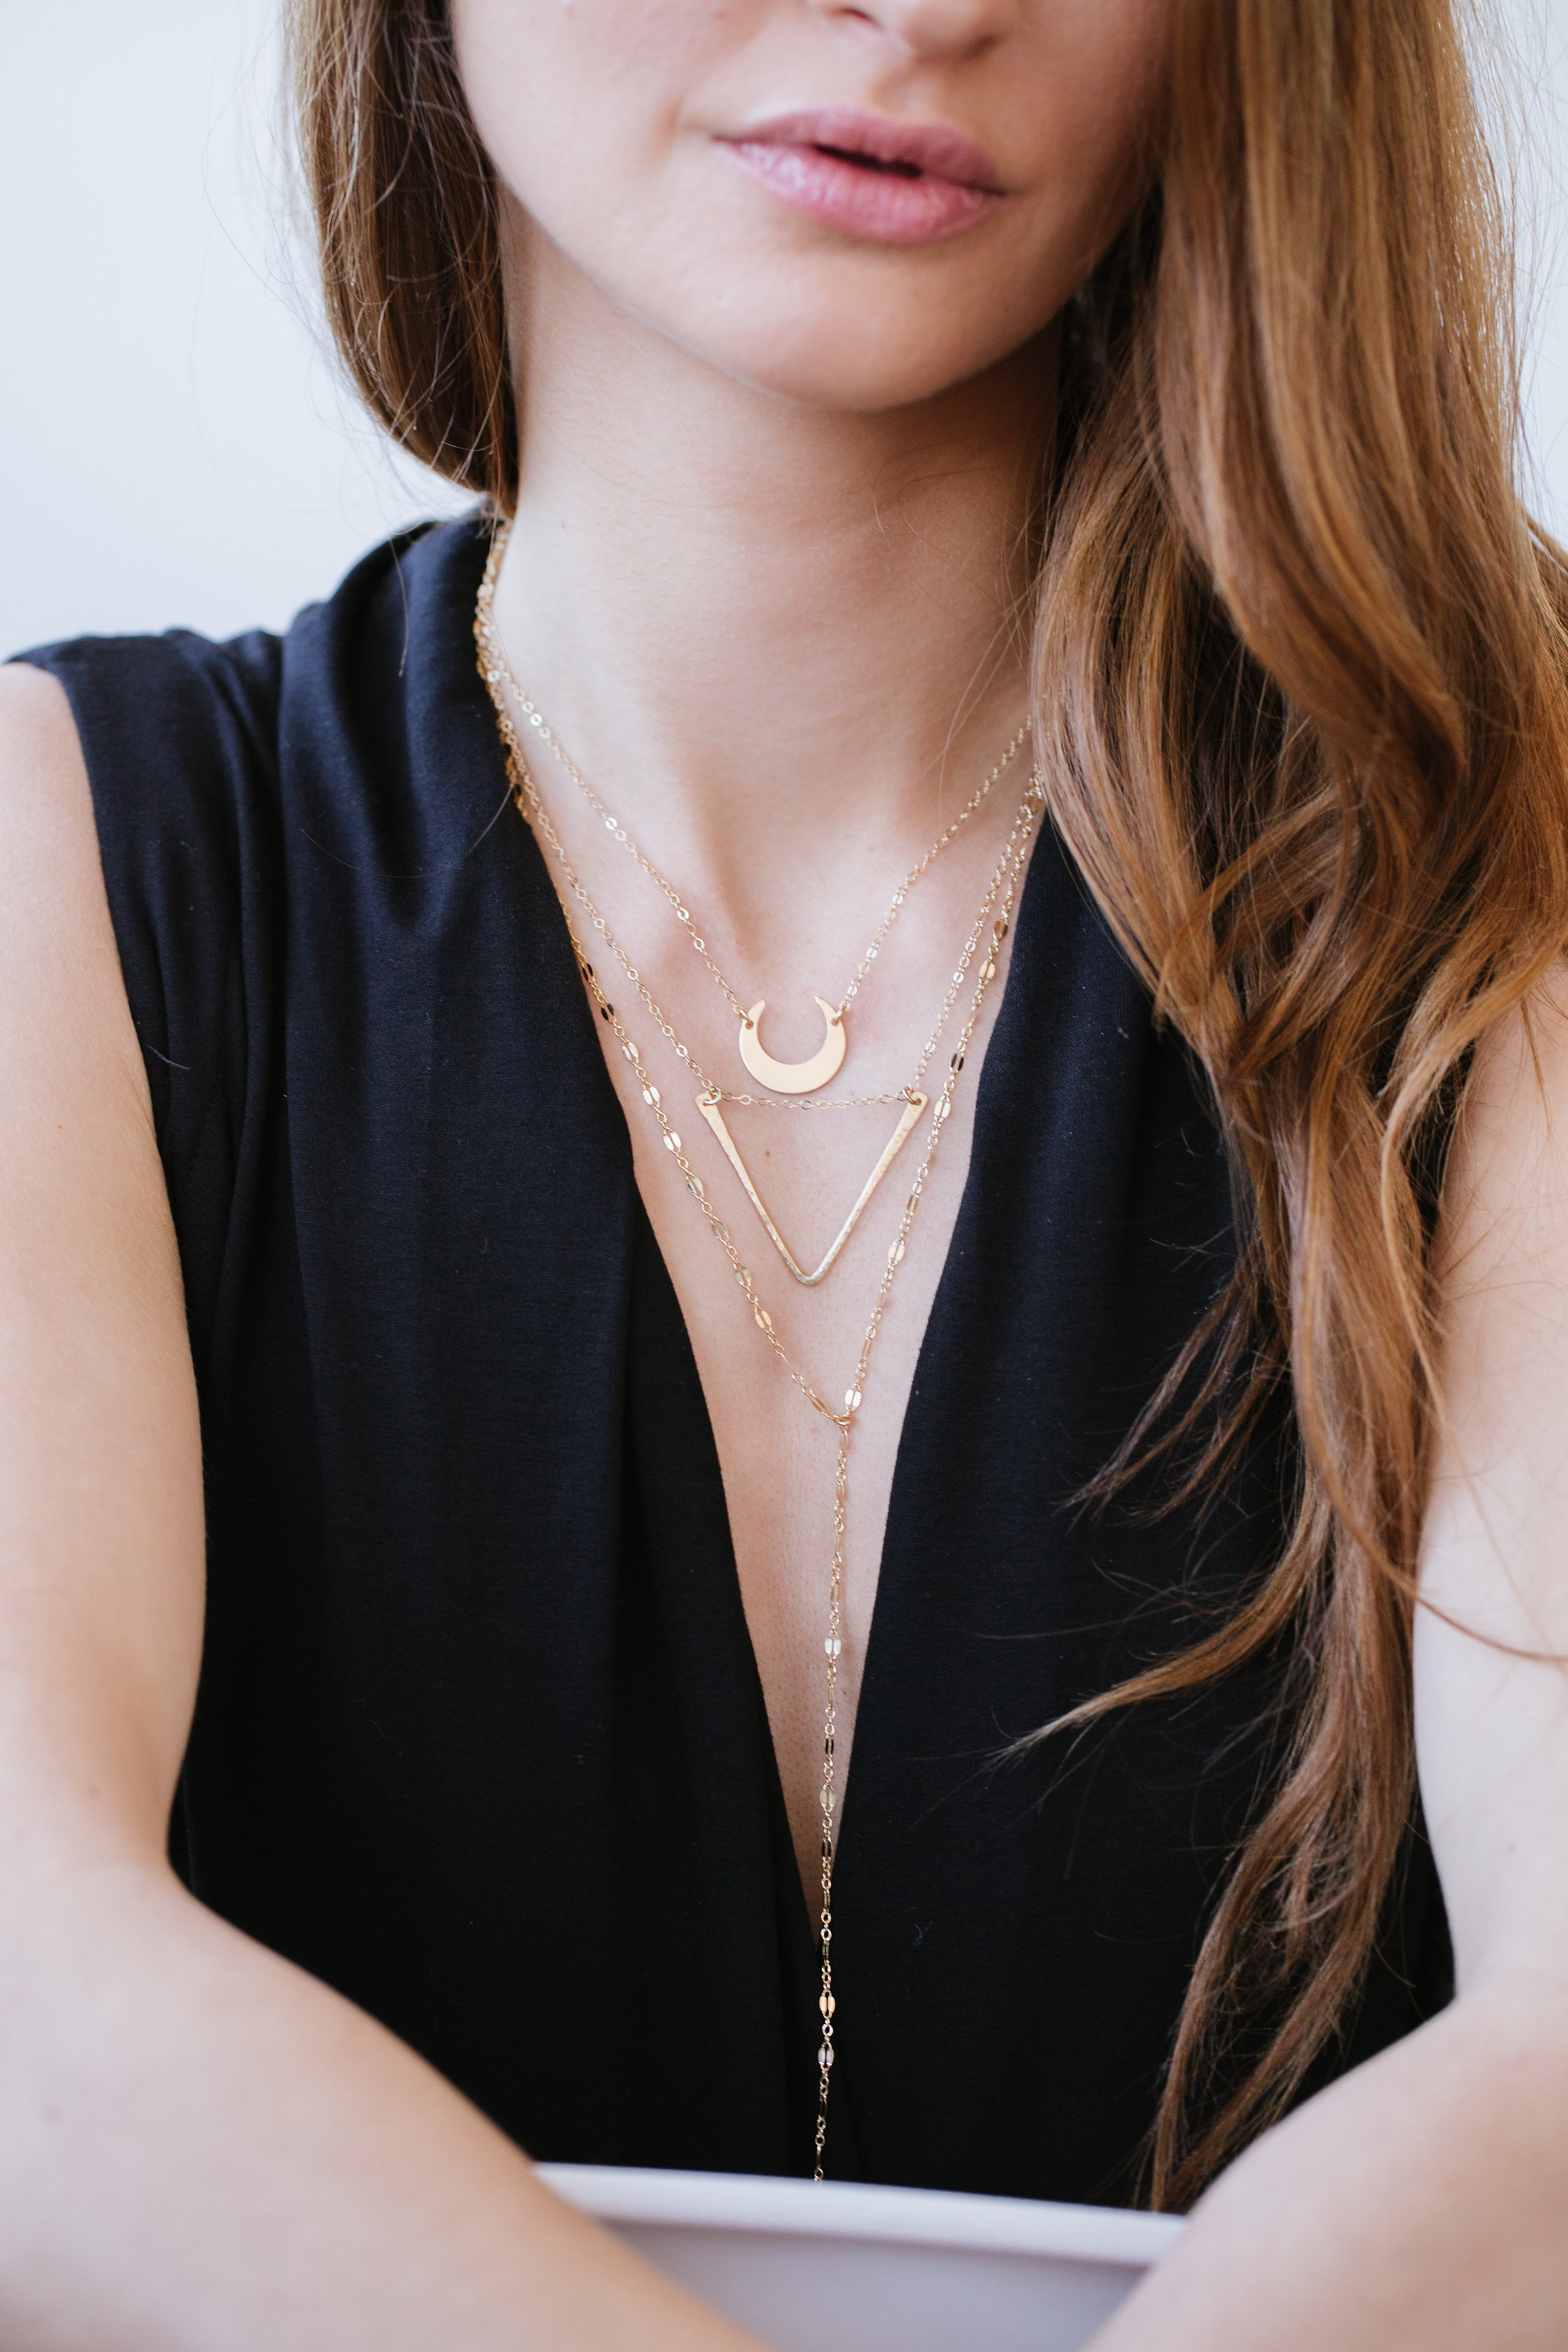 1.Necklaces: - 1. Choose a necklace that is already layered for you and only has one clasp or choose necklaces of various lengths that can be worn together.2. Don't worry about wearing all of the same metal color - mixing and matching is A-Ok in our book.3. Layer the pendants from the smallest on the top to the largest on the bottom. Lariats should go on the bottom too.